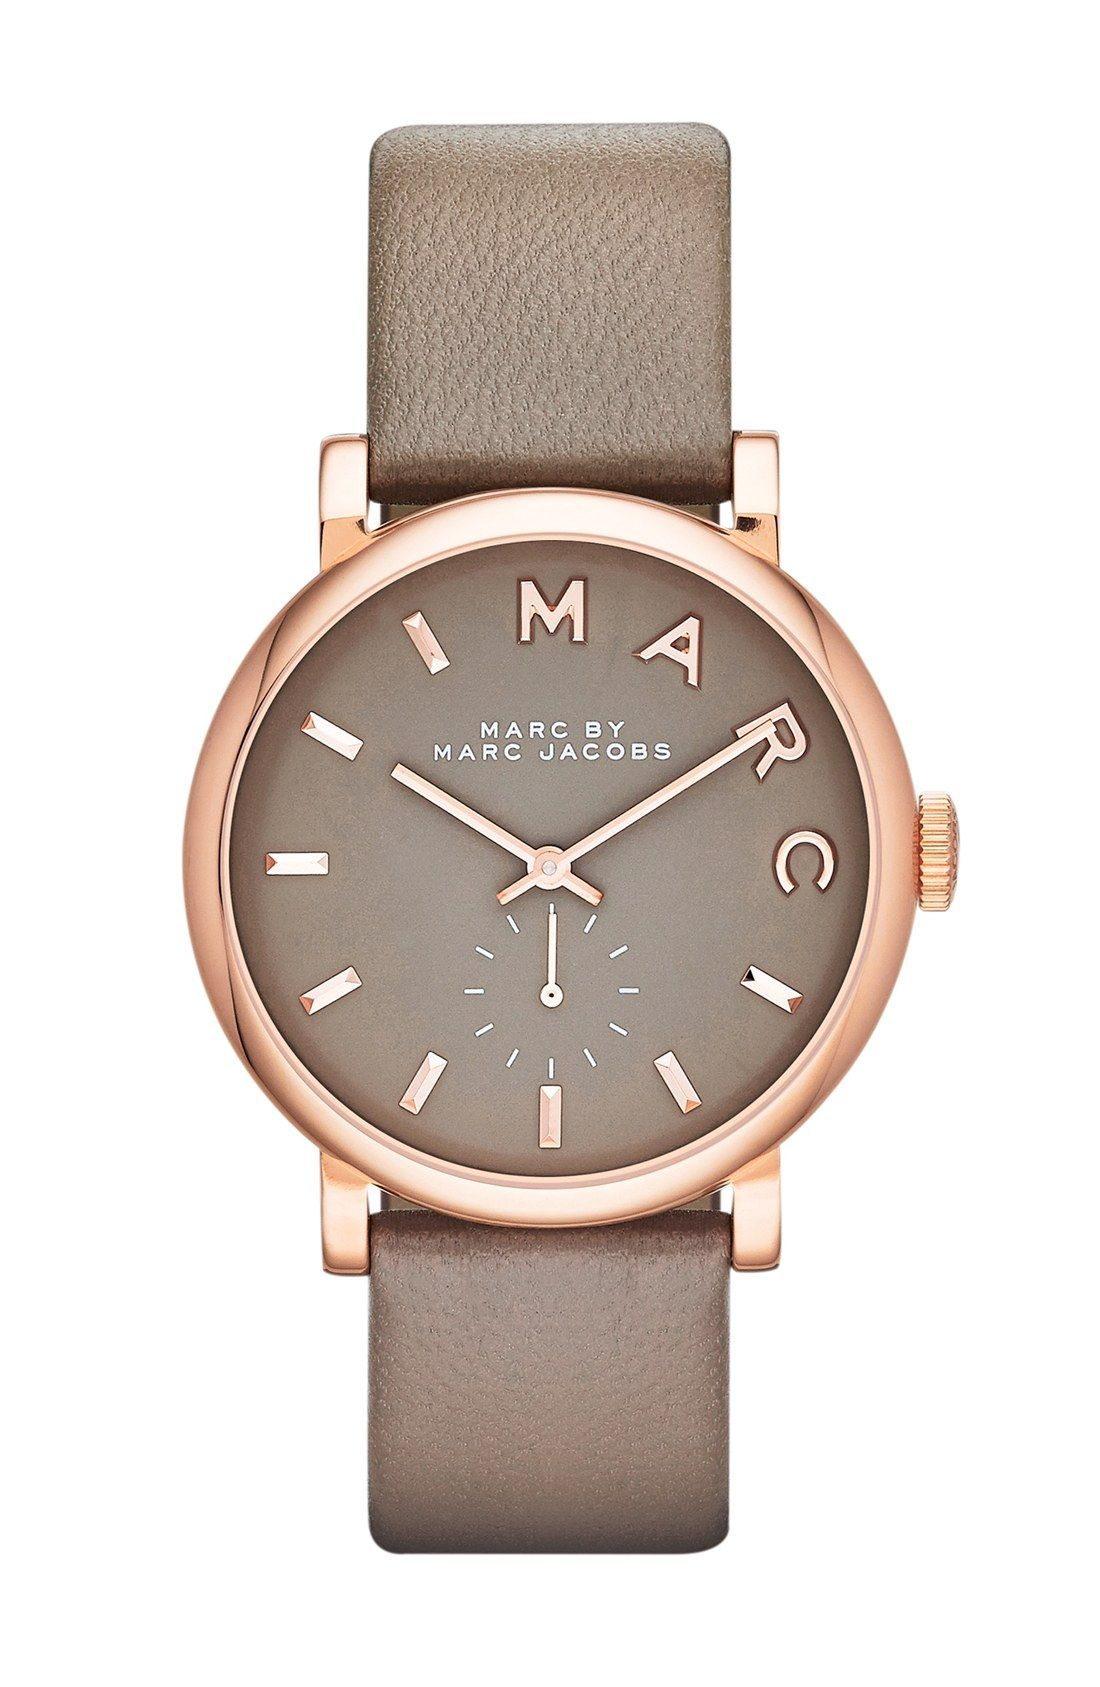 e9b1d82842c0b3 Who knew gray + rose gold would look so fantastic together  This Marc Jacobs  watch does it right.